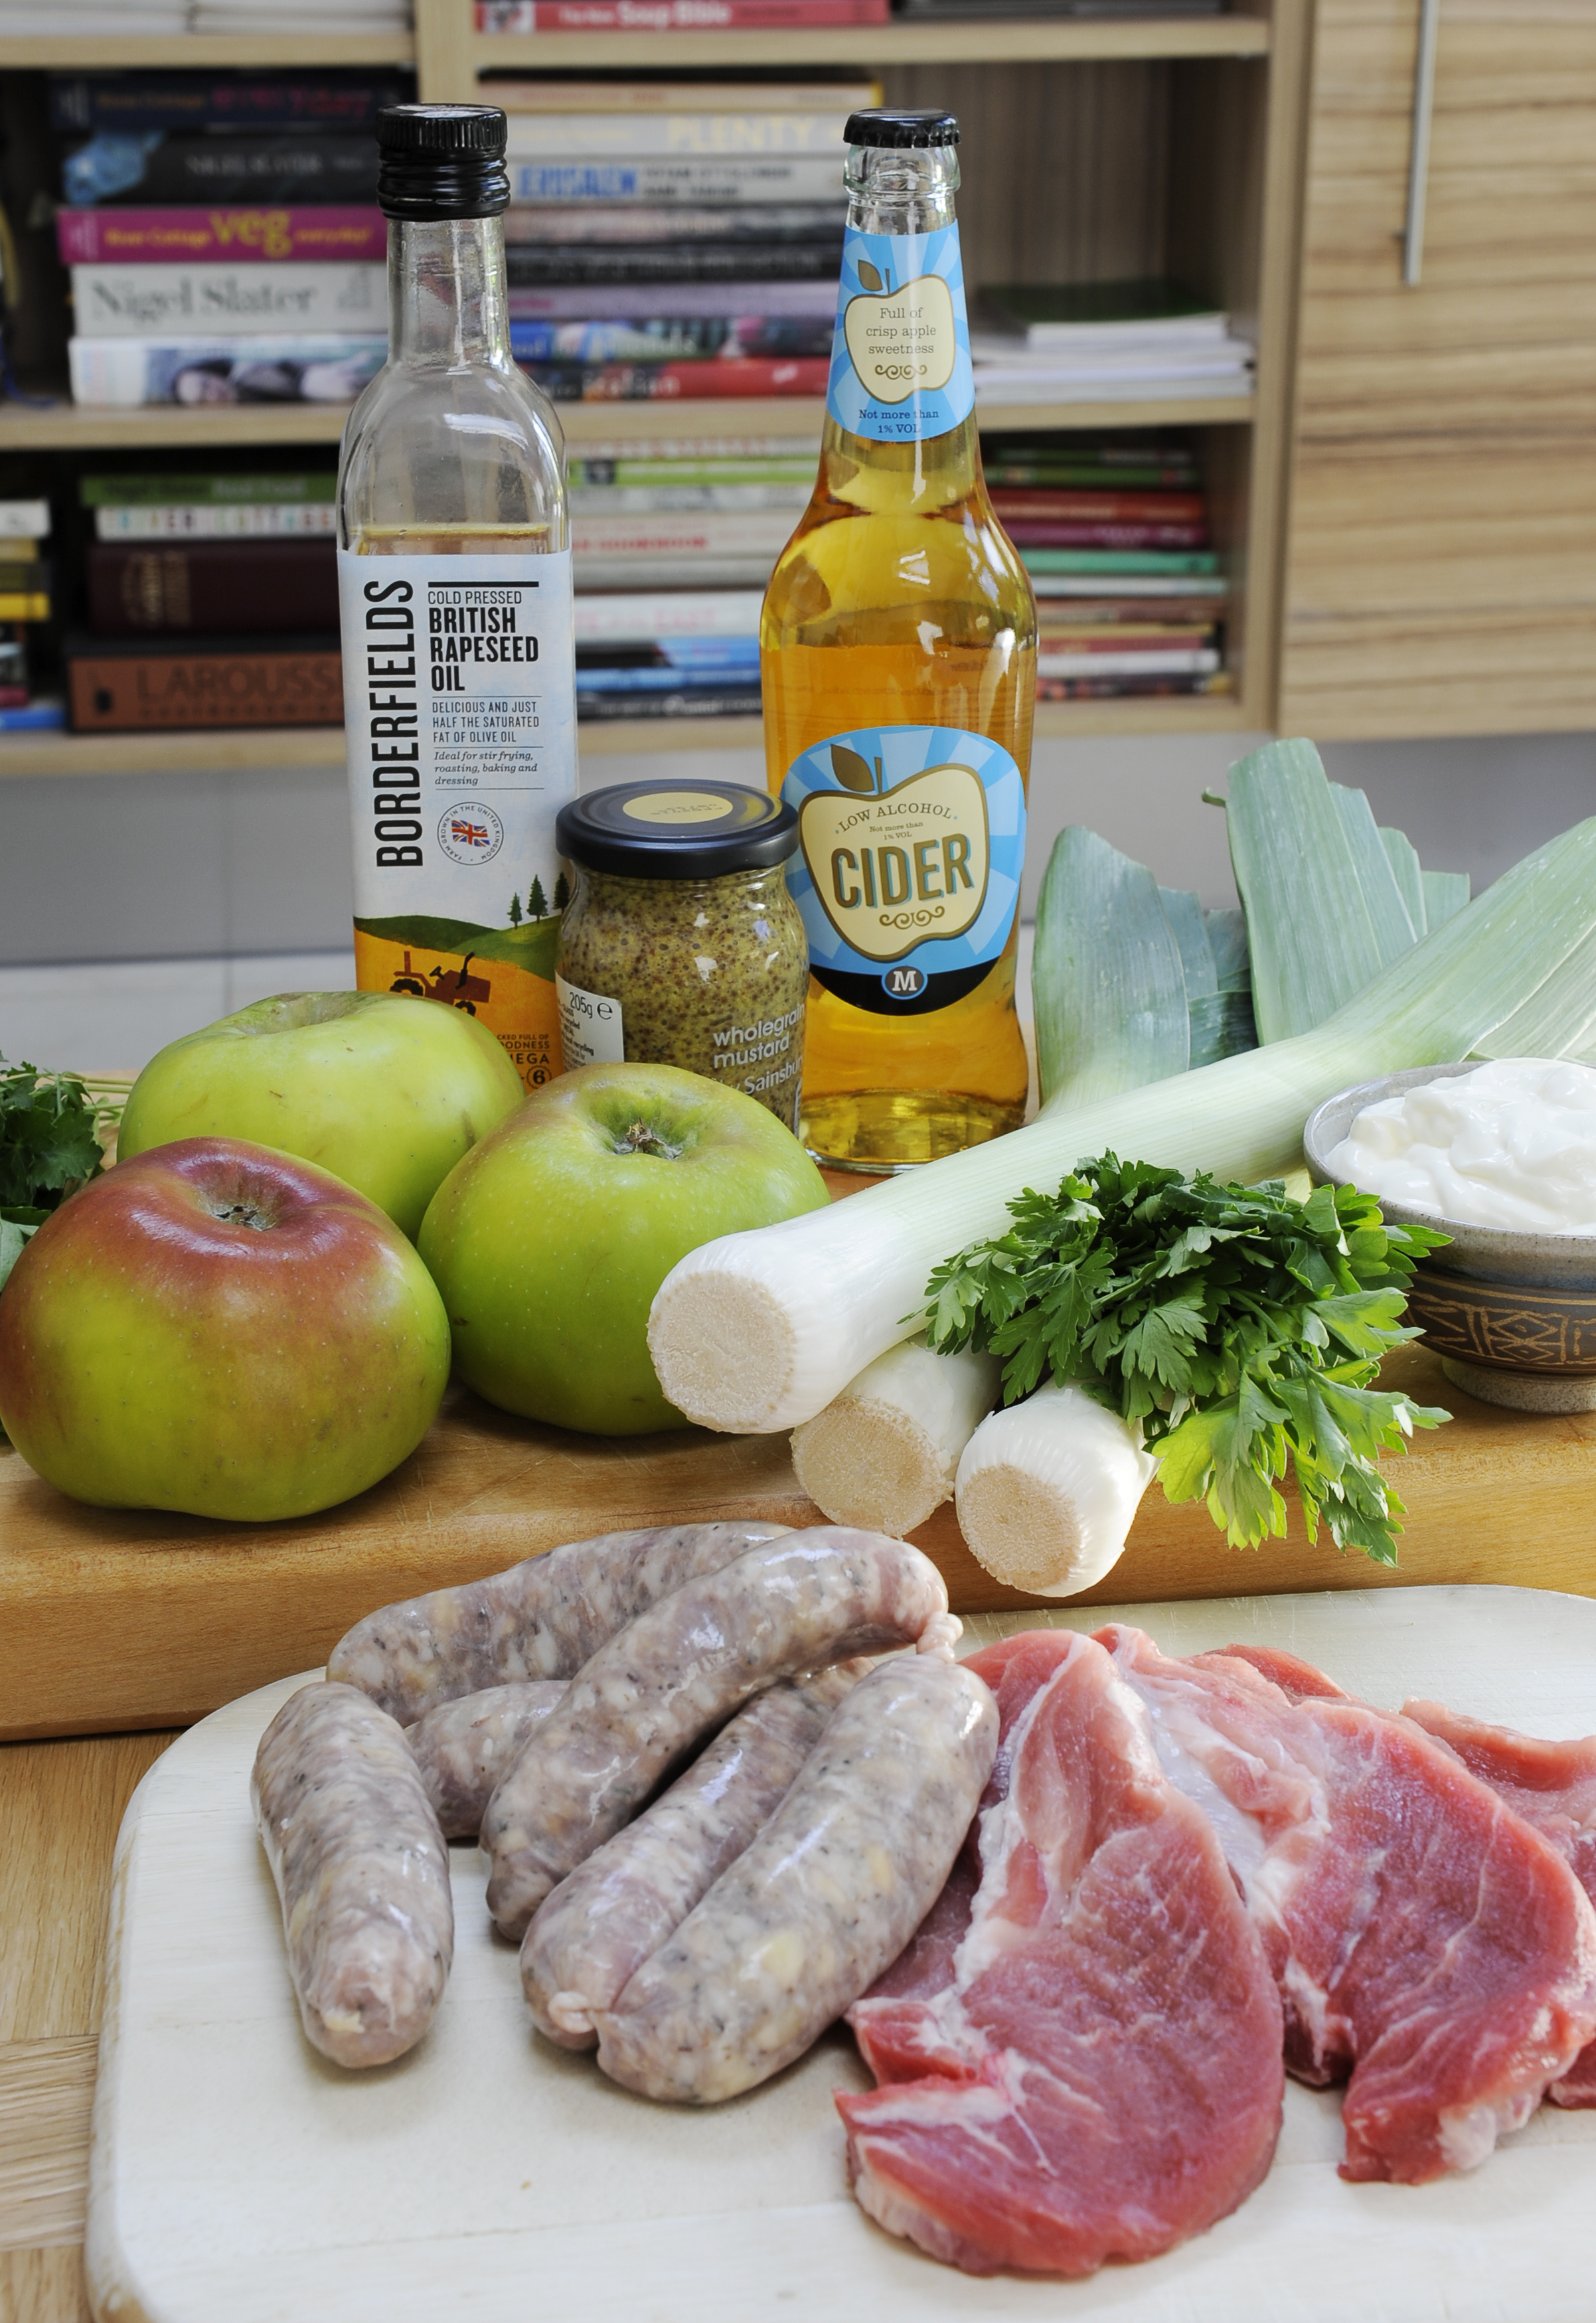 1: Ready, Steady, Cook!    Develop the confidence to turn whatever you have in your kitchen (fresh, tinned, dried, etc) into a tasty meal without having to buy extra ingredients or follow a recipe.